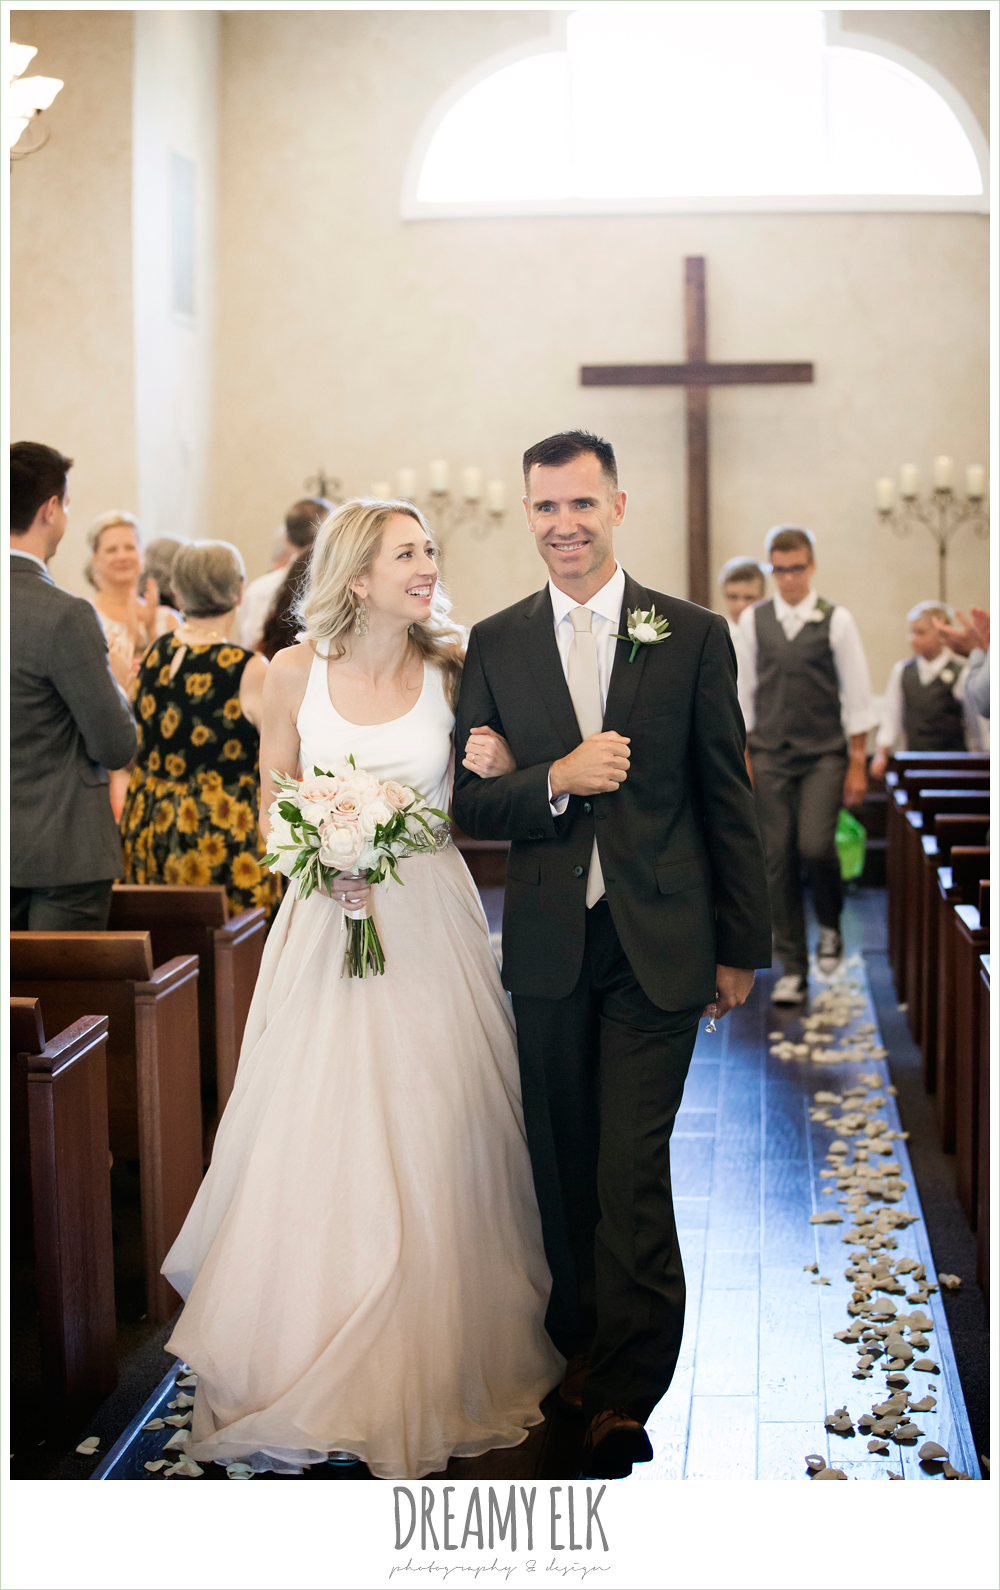 bride and groom walking down the aisle, hugo boss groom's suit, carol hannah kensington halter and blush skirt, july summer morning wedding, ashelynn manor, magnolia, texas {dreamy elk photography and design} photo